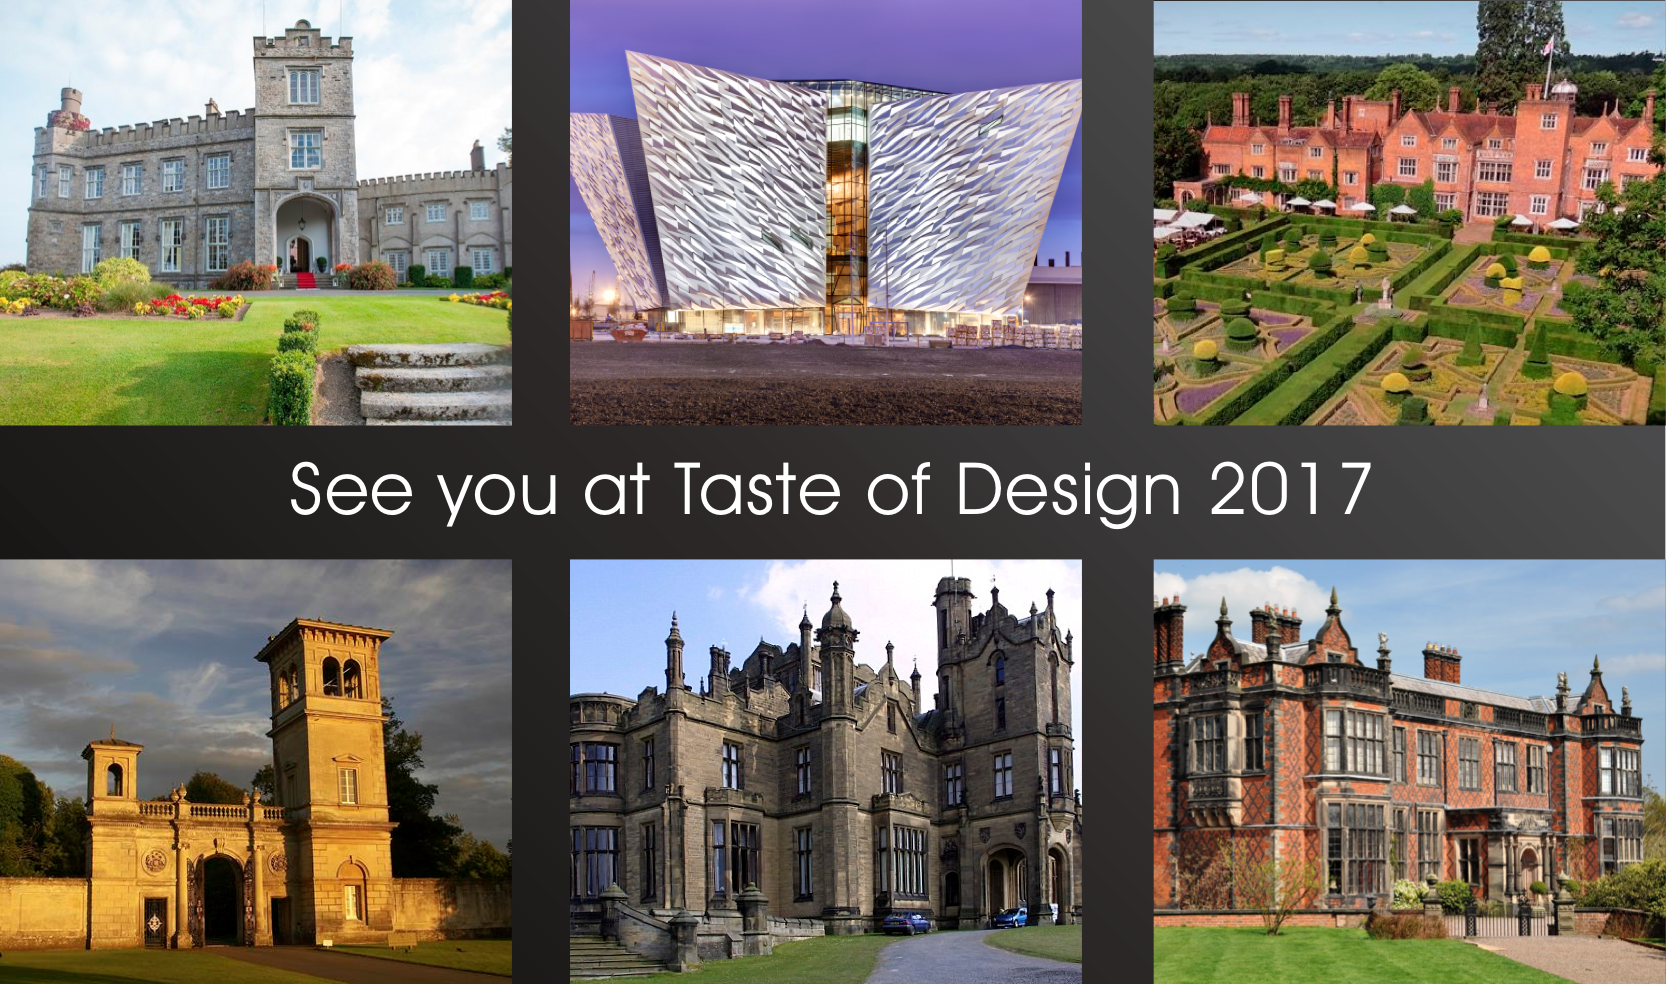 See you at Taste of Design 2017